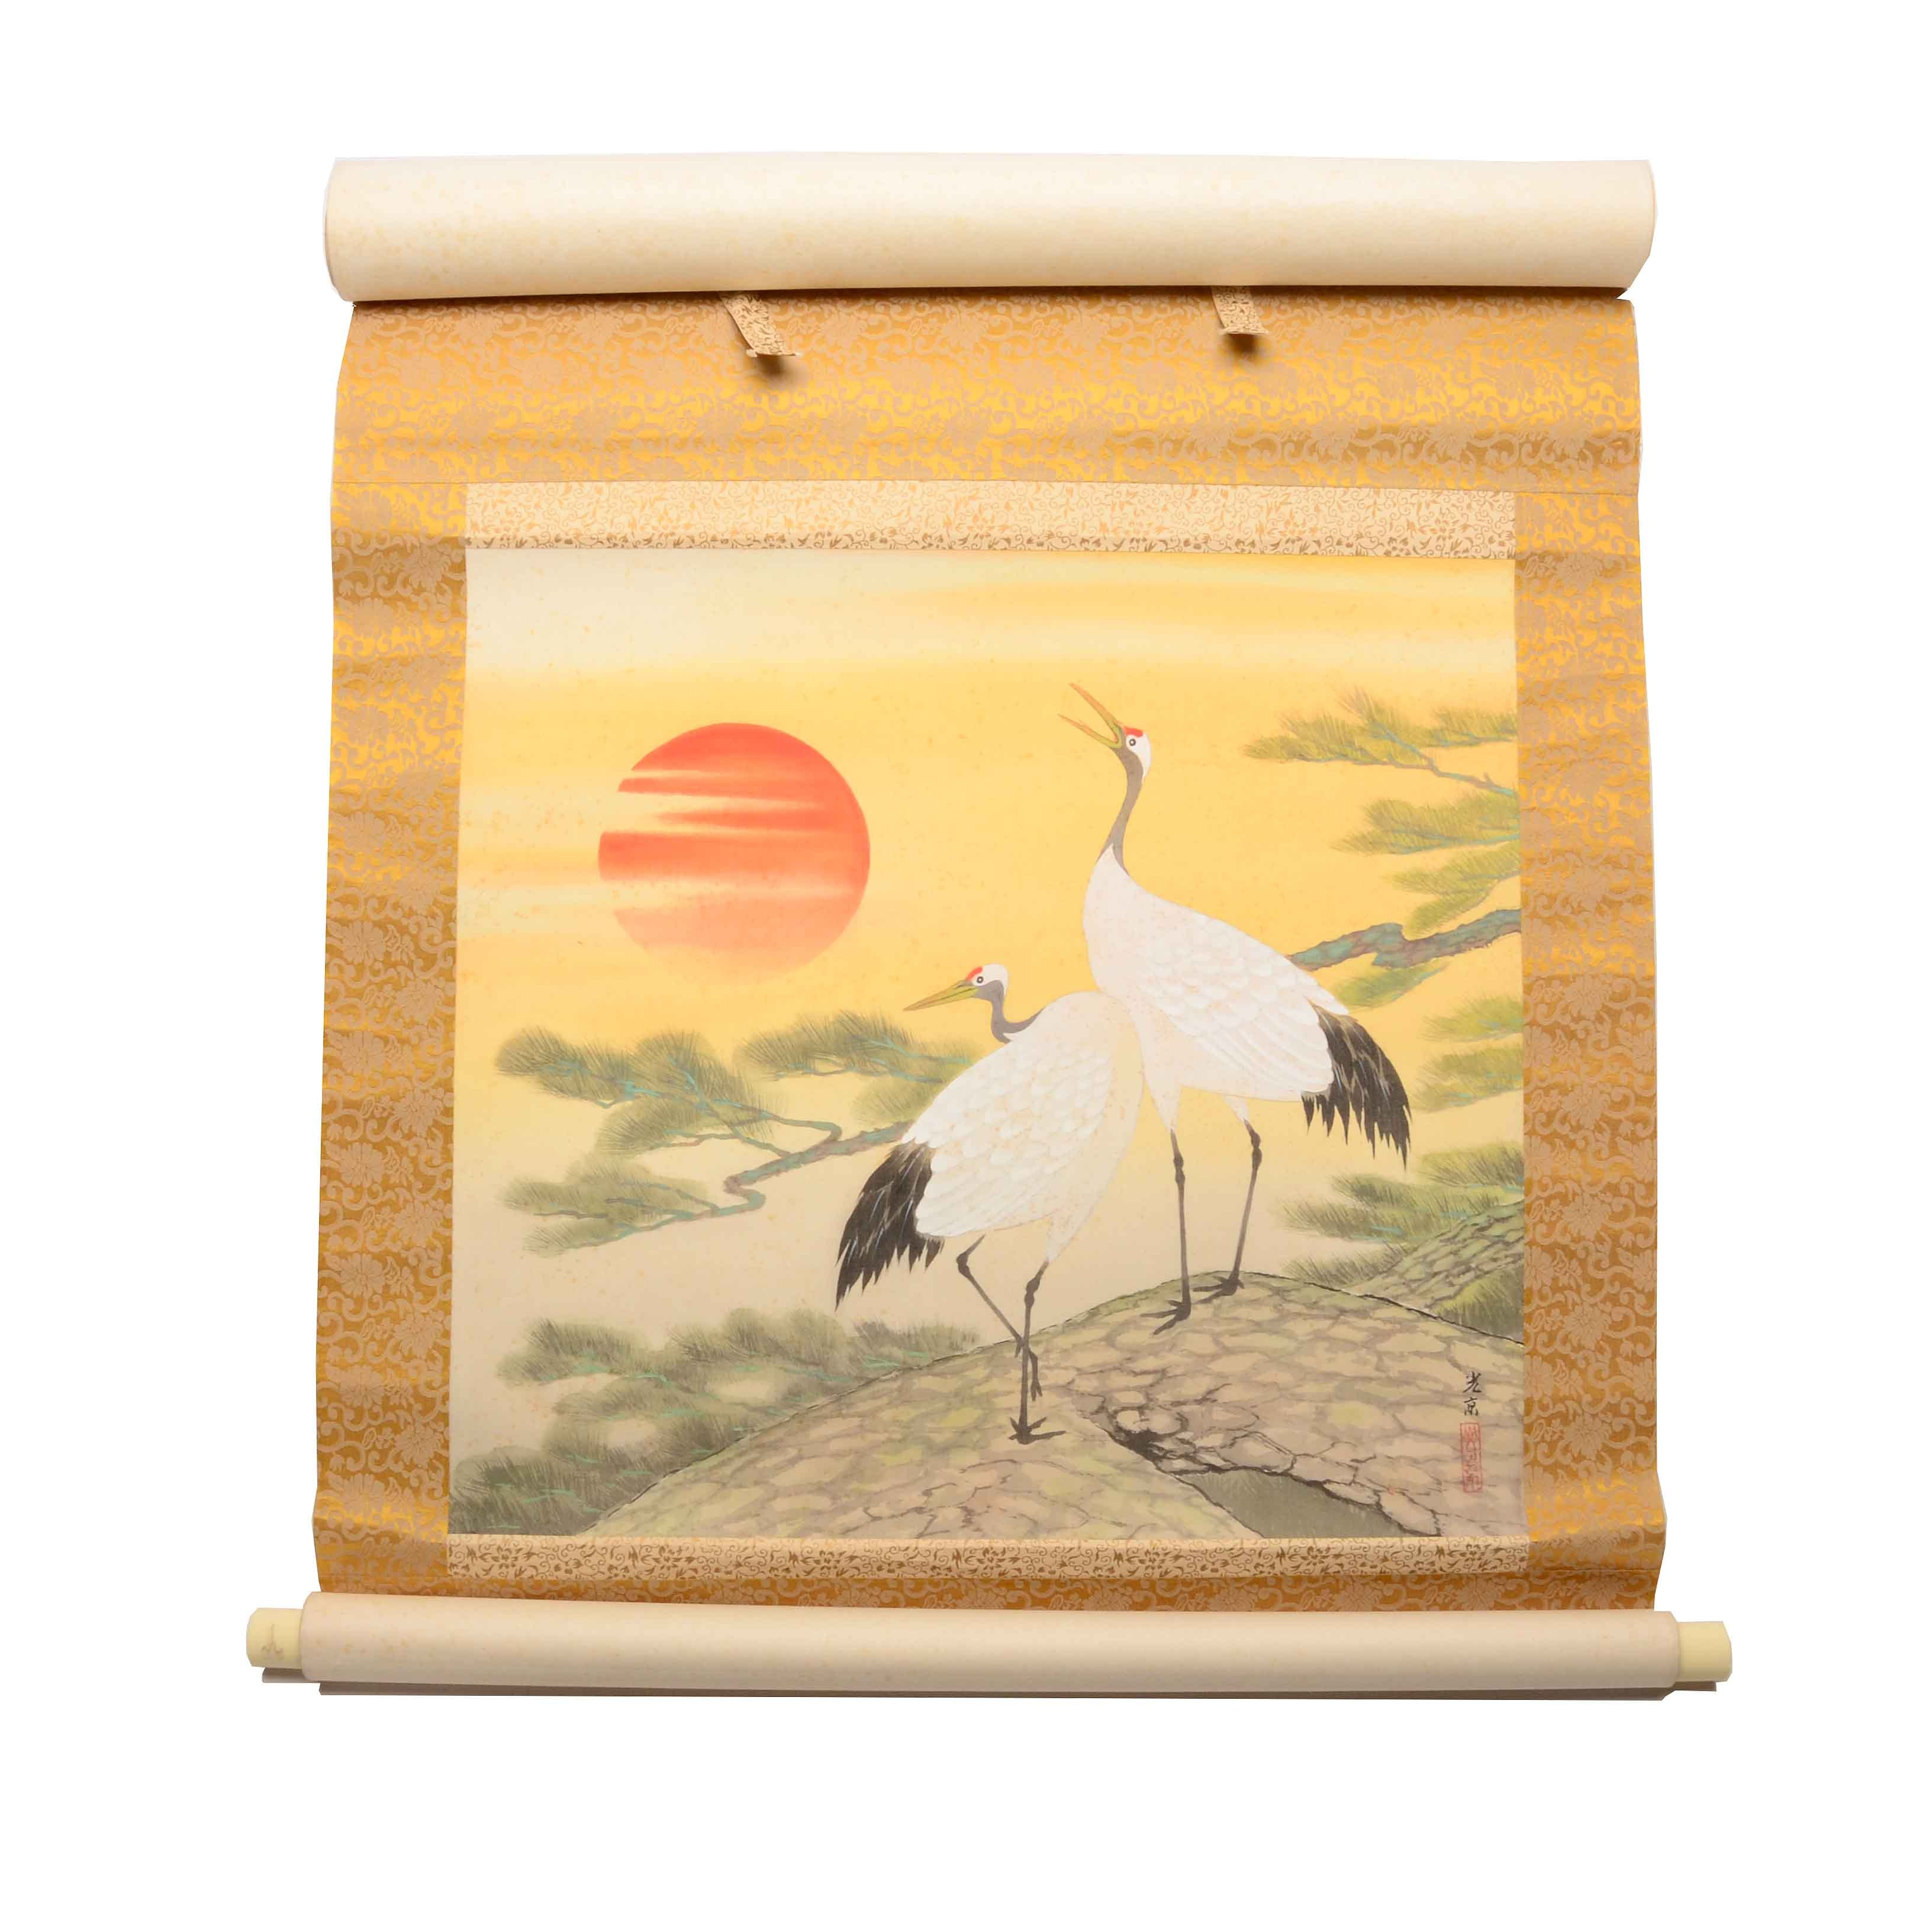 Chinese Original Gouache Scroll Painting of Cranes on Silk